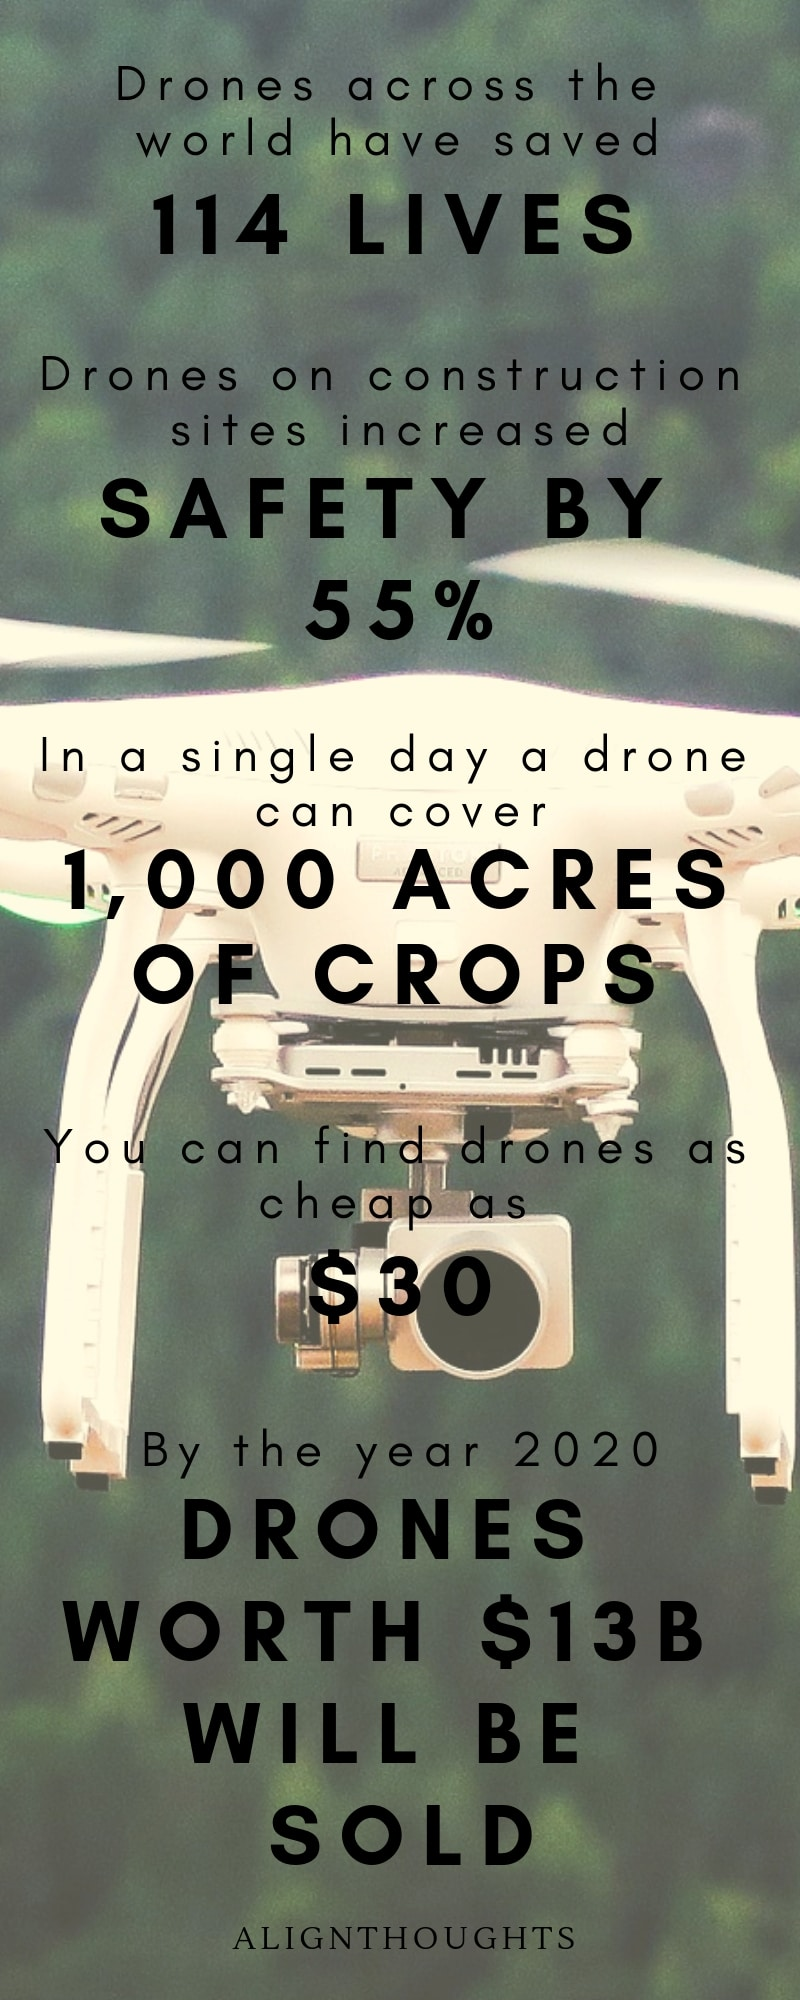 impact-of-drones-in-real-life-alignthoughts